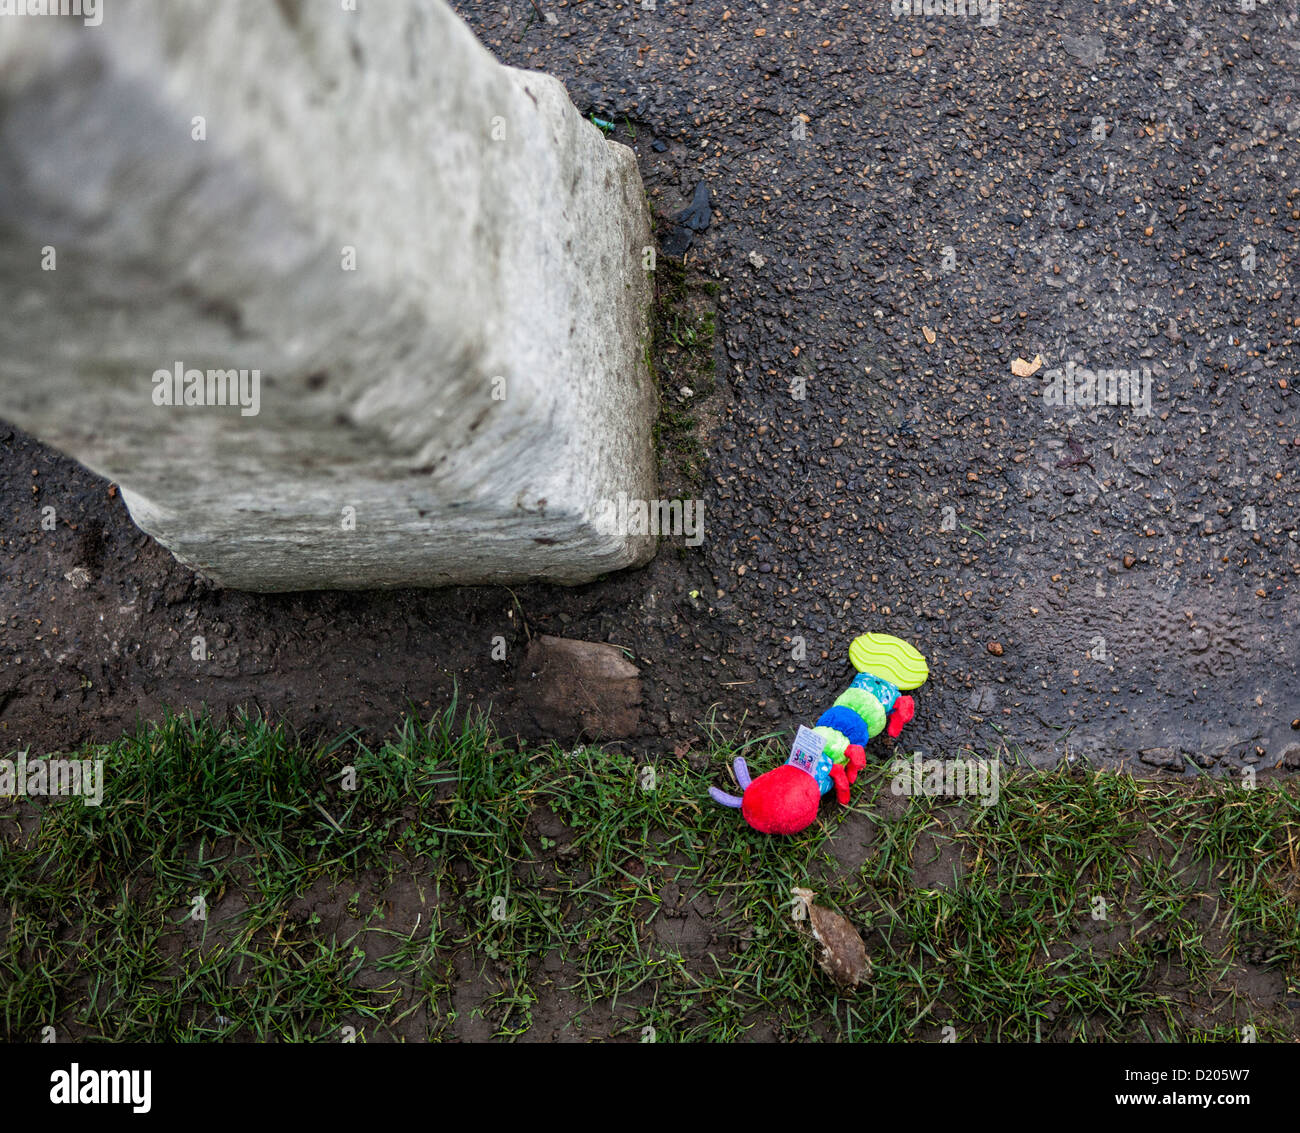 A baby's toy (worm-shaped teething ring or aid) is dropped on the muddy ground - Stock Image